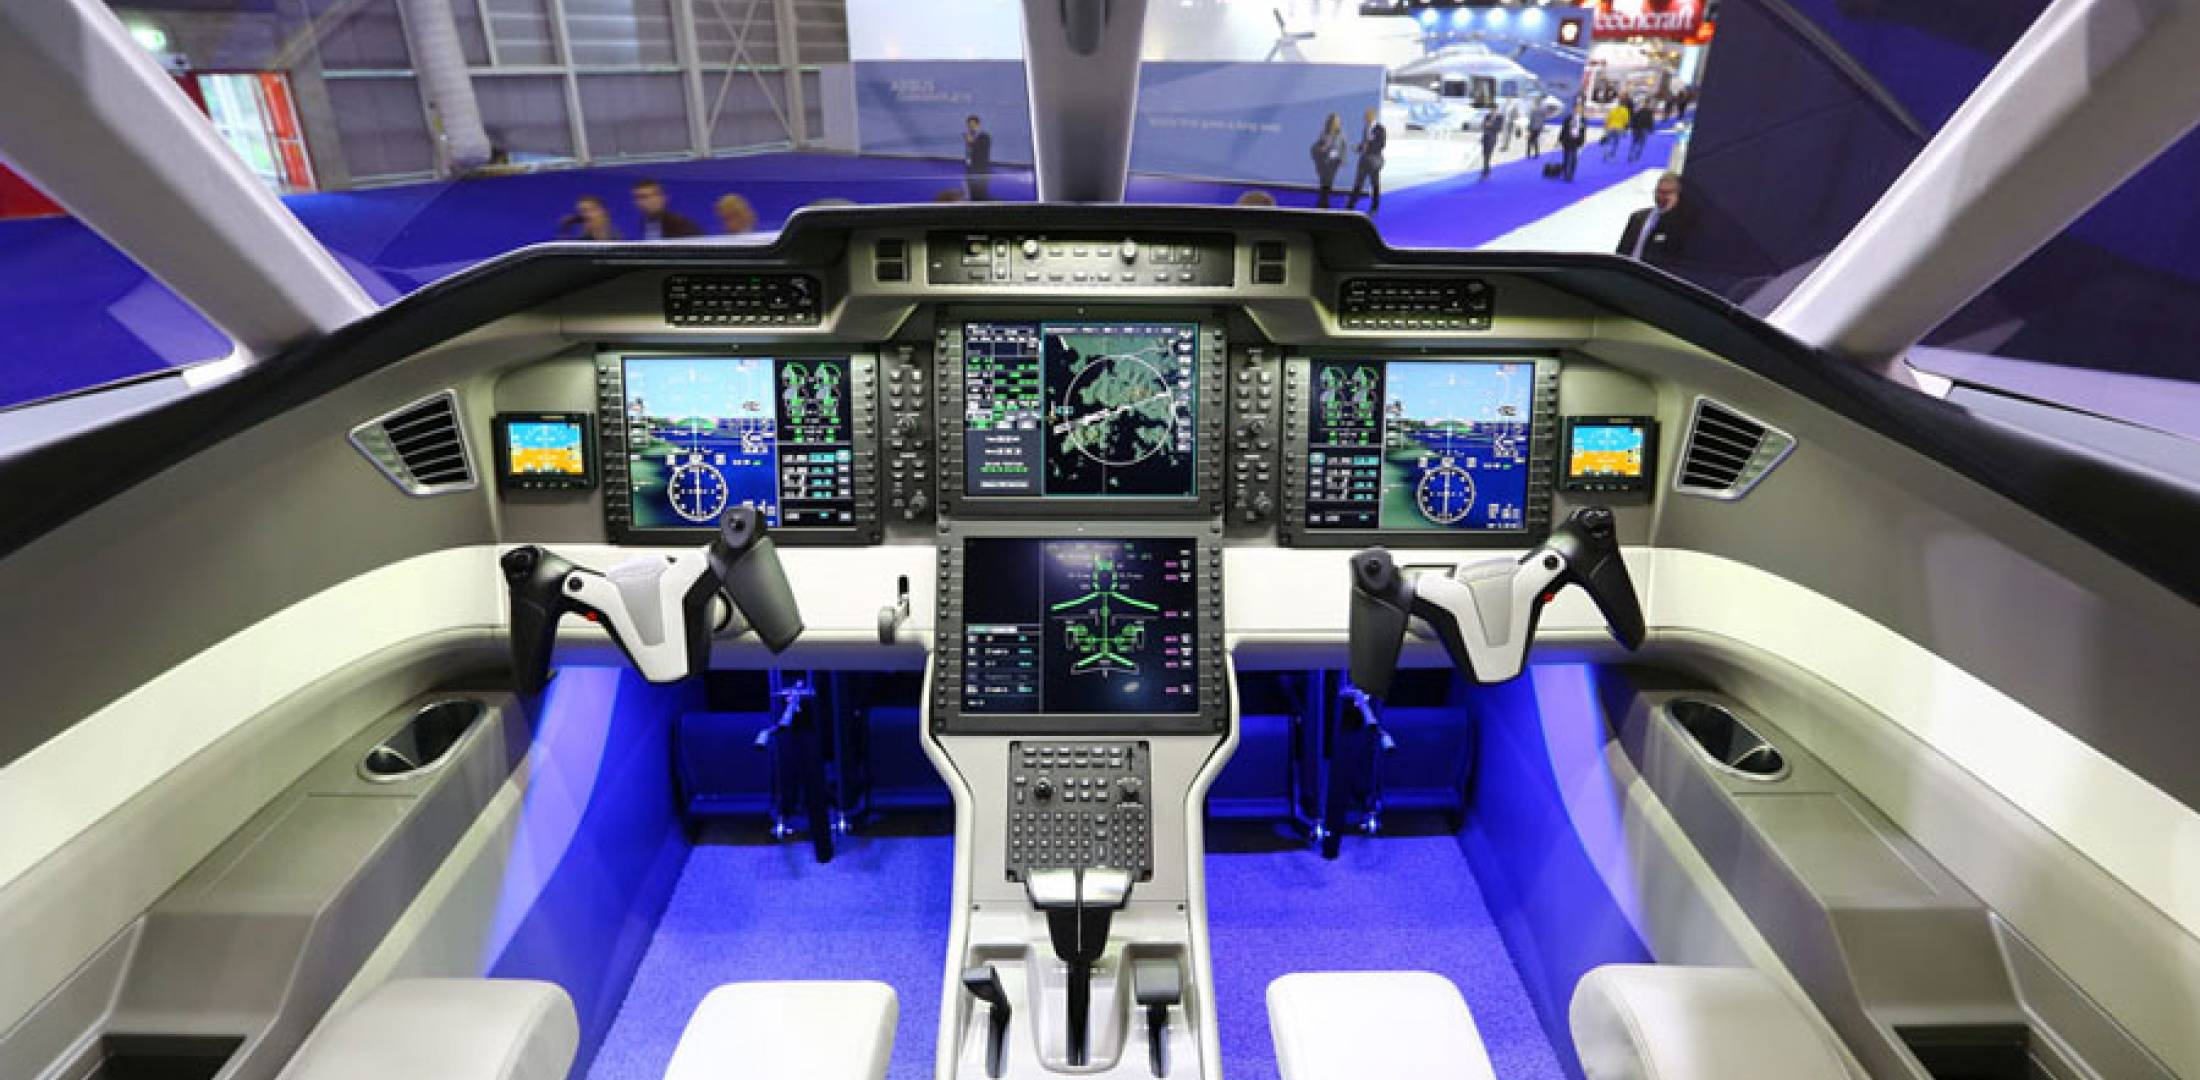 Pilots will be treated to an impressive cockpit, featuring avionics based on Honeywell's Primus Apex flight deck, but branded as the Pilatus Advanced ...